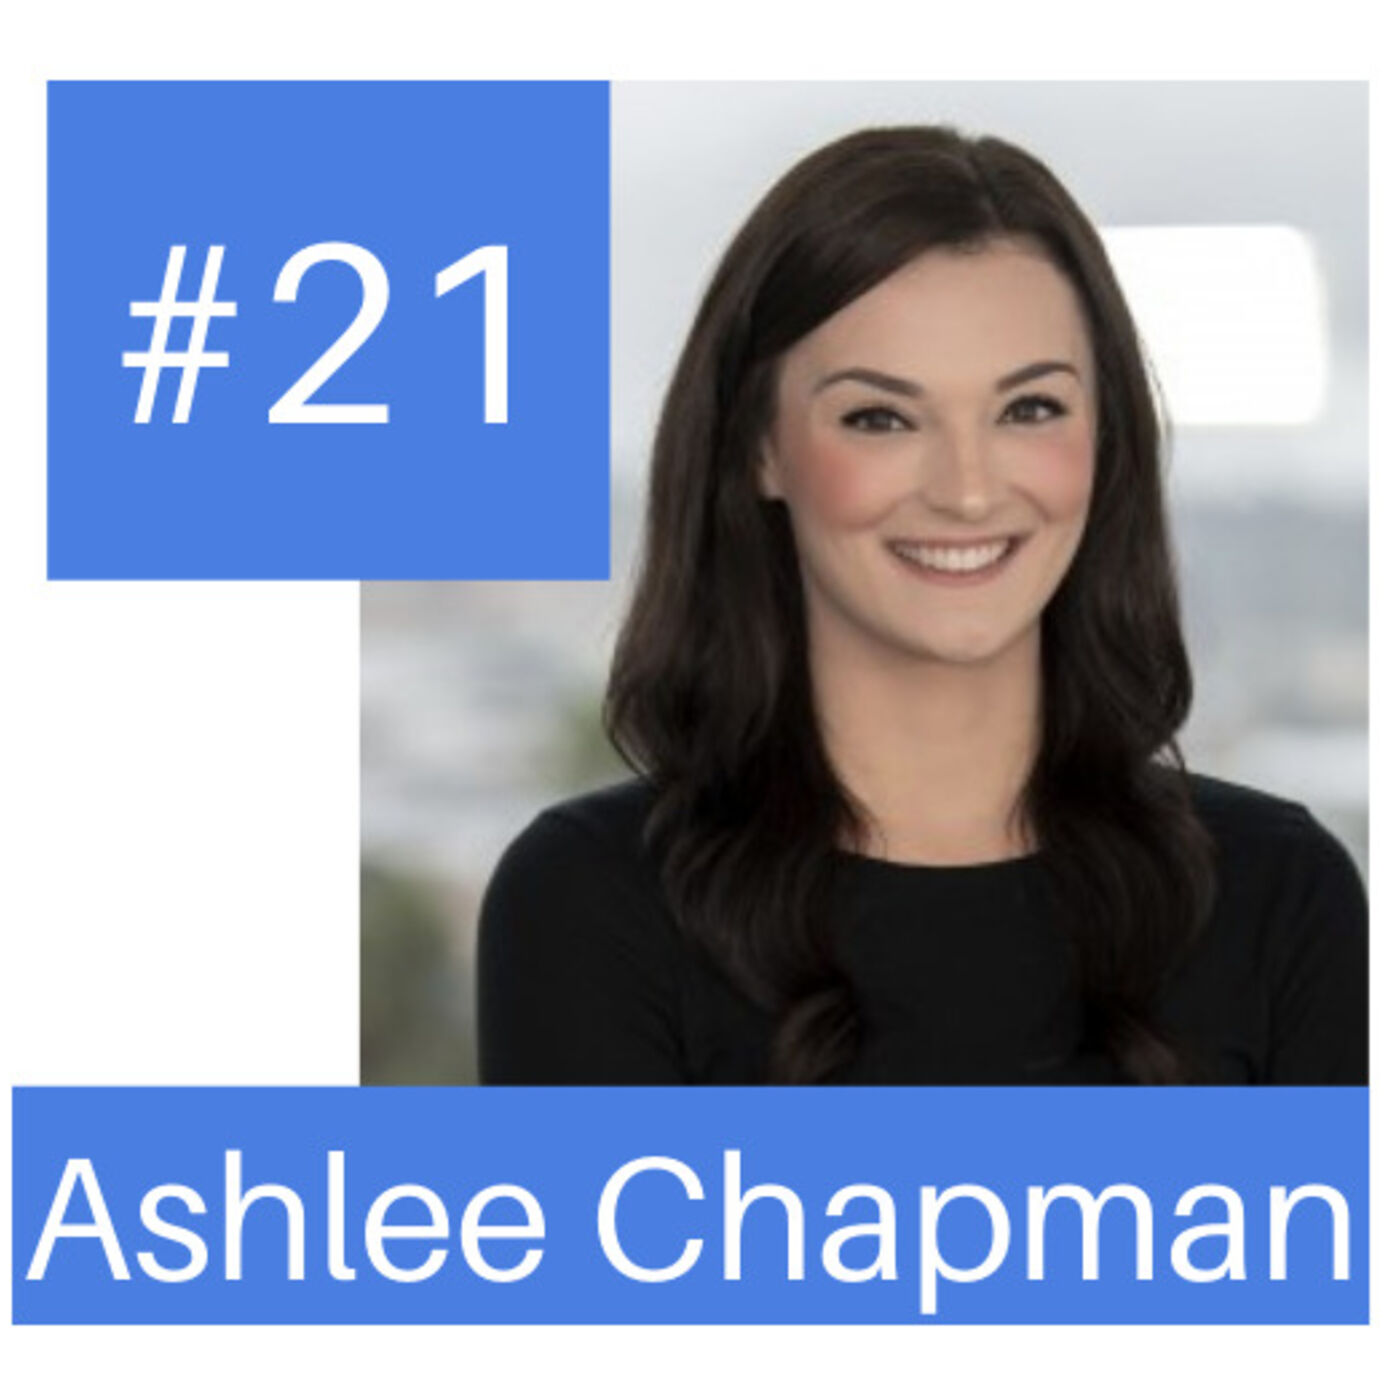 Podcast #21-  Lead Generation Master Ashlee Chapman on How to Win on the Phone